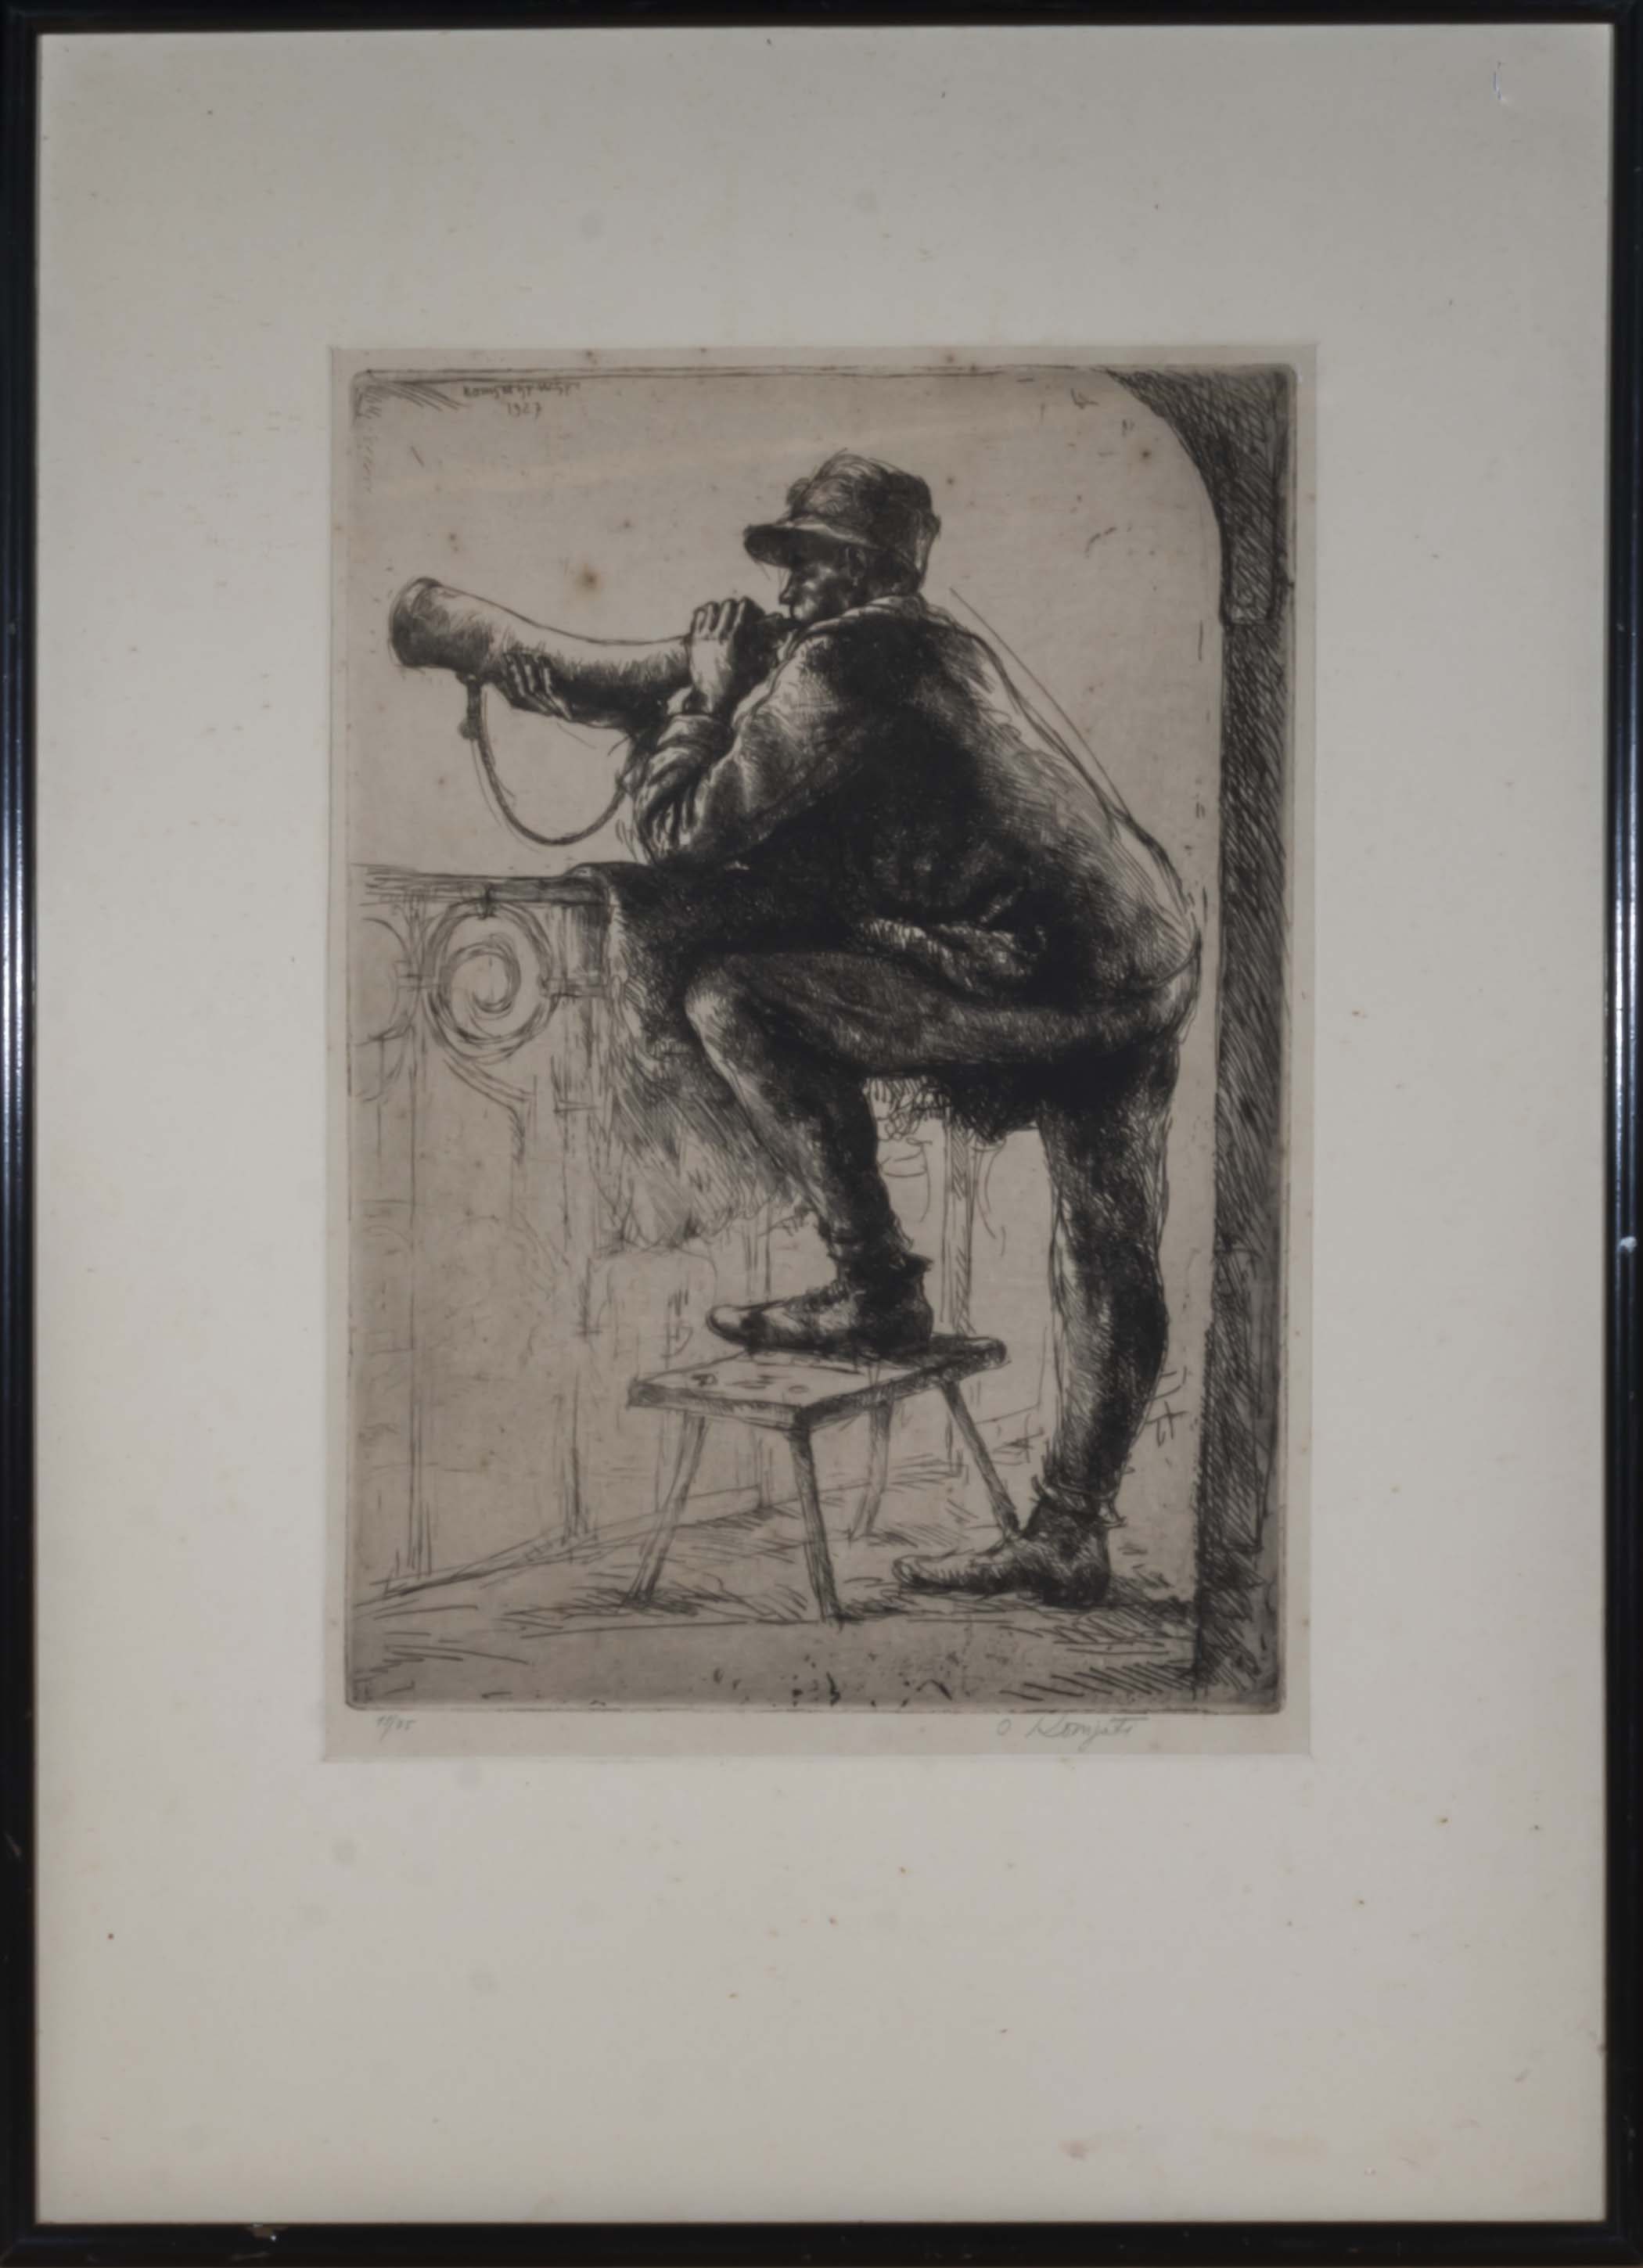 Lot 39 - A limited edition military engraving